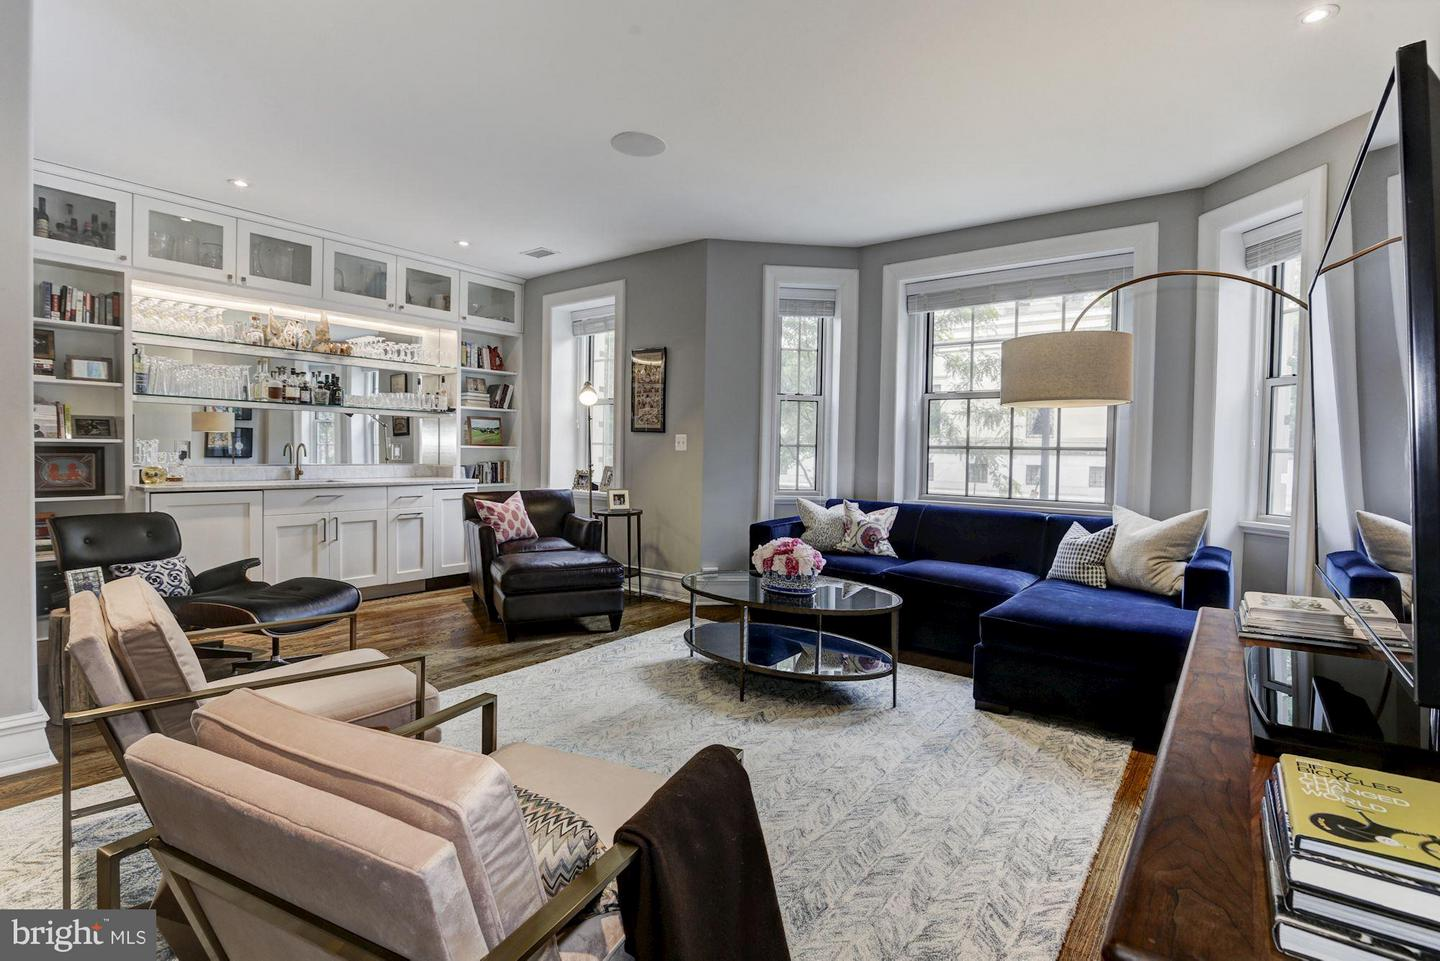 Single Family Home for Sale at 1801 16th St Nw #112 1801 16th St Nw #112 Washington, District Of Columbia 20009 United States